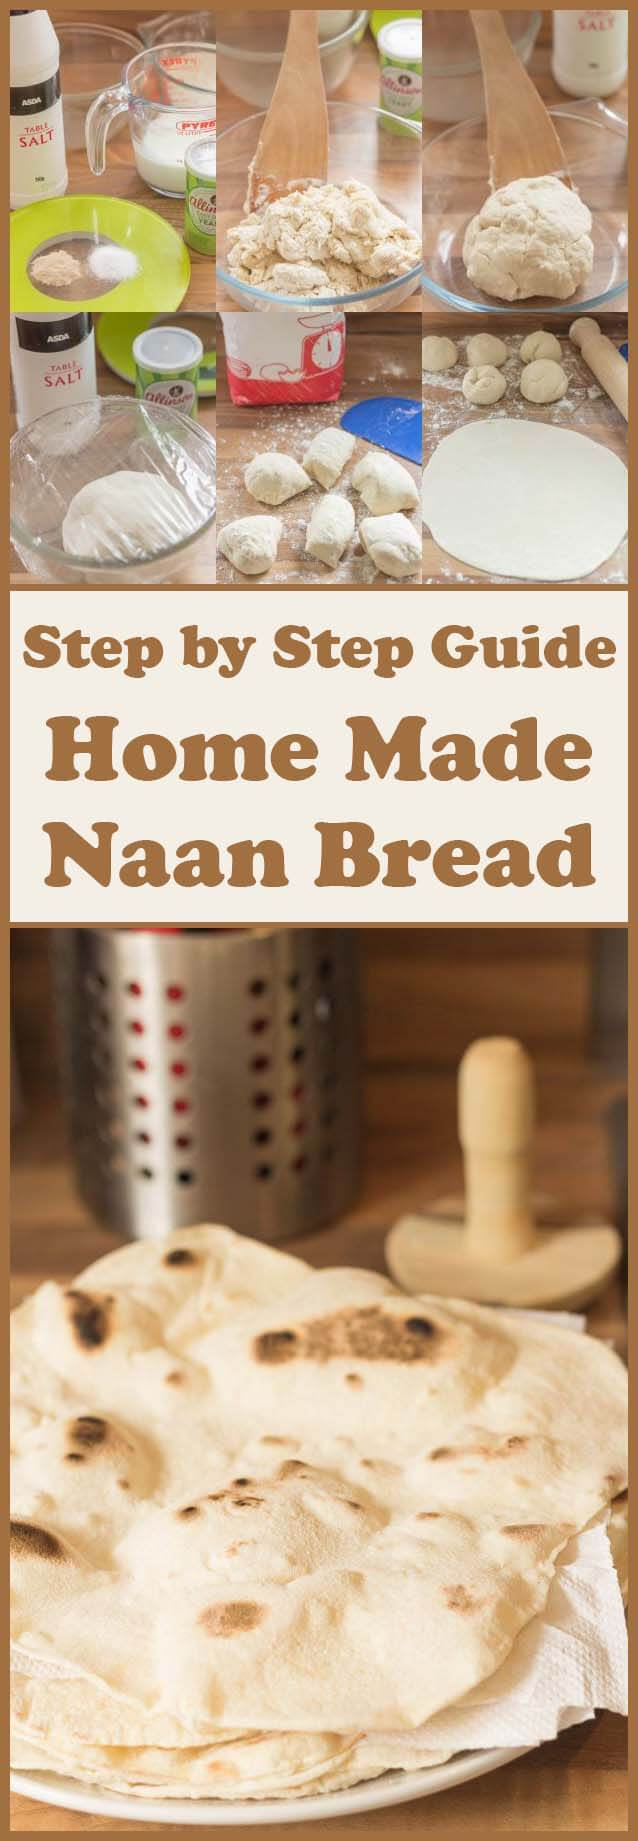 This home made naan bread recipe is so easy to make. Check out this step by step guide to show you how, in just over an hour, you could be scooping out your favourite curry with this healthier alternative. Made by using Greek yogurt and no butter/ghee, you'll never want to go back to shop bought or unhealthier versions once you've made this!